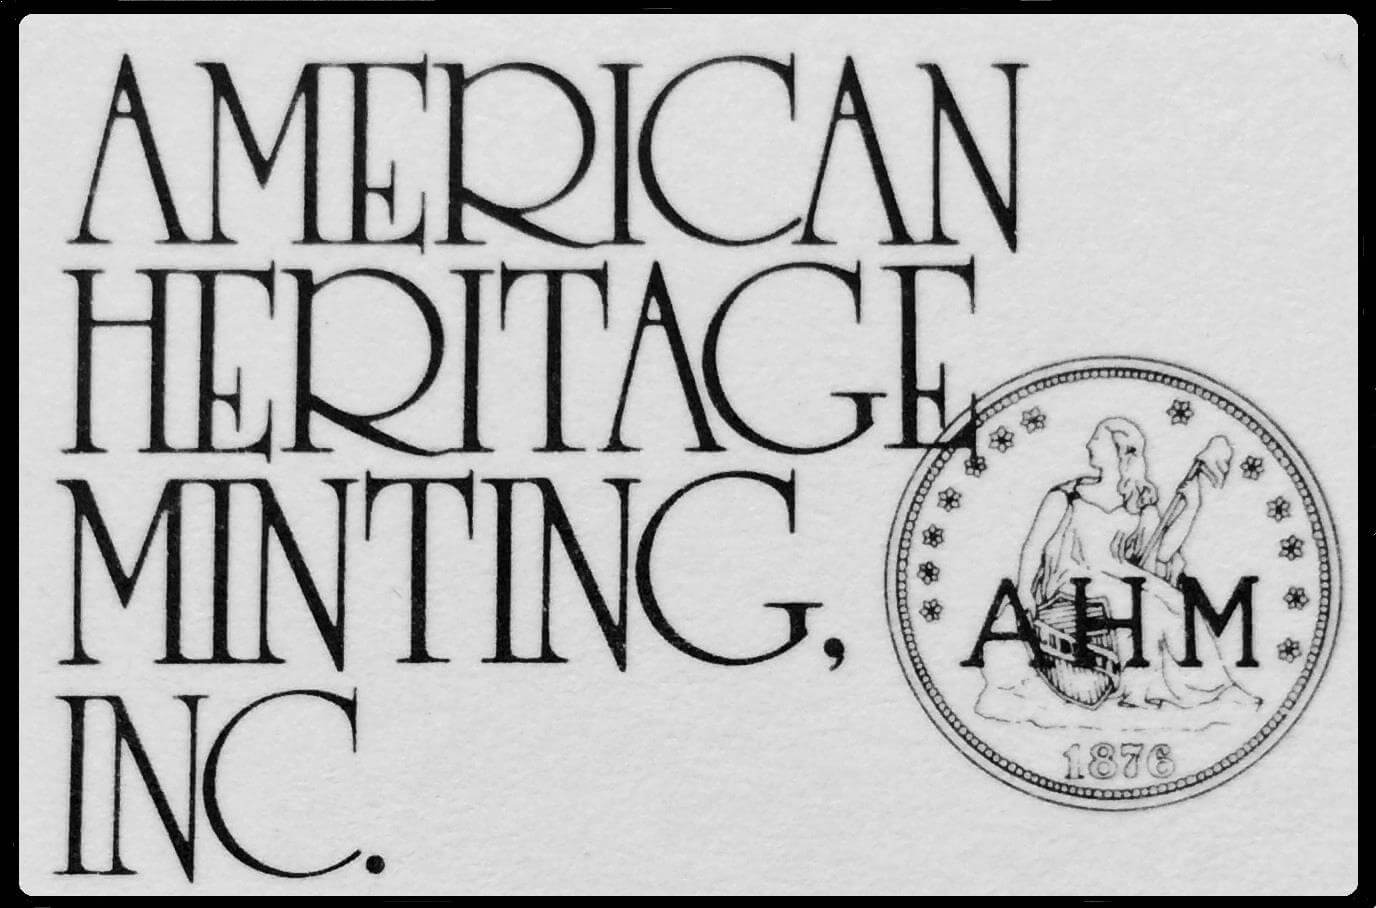 American Heritage Minting, Inc.